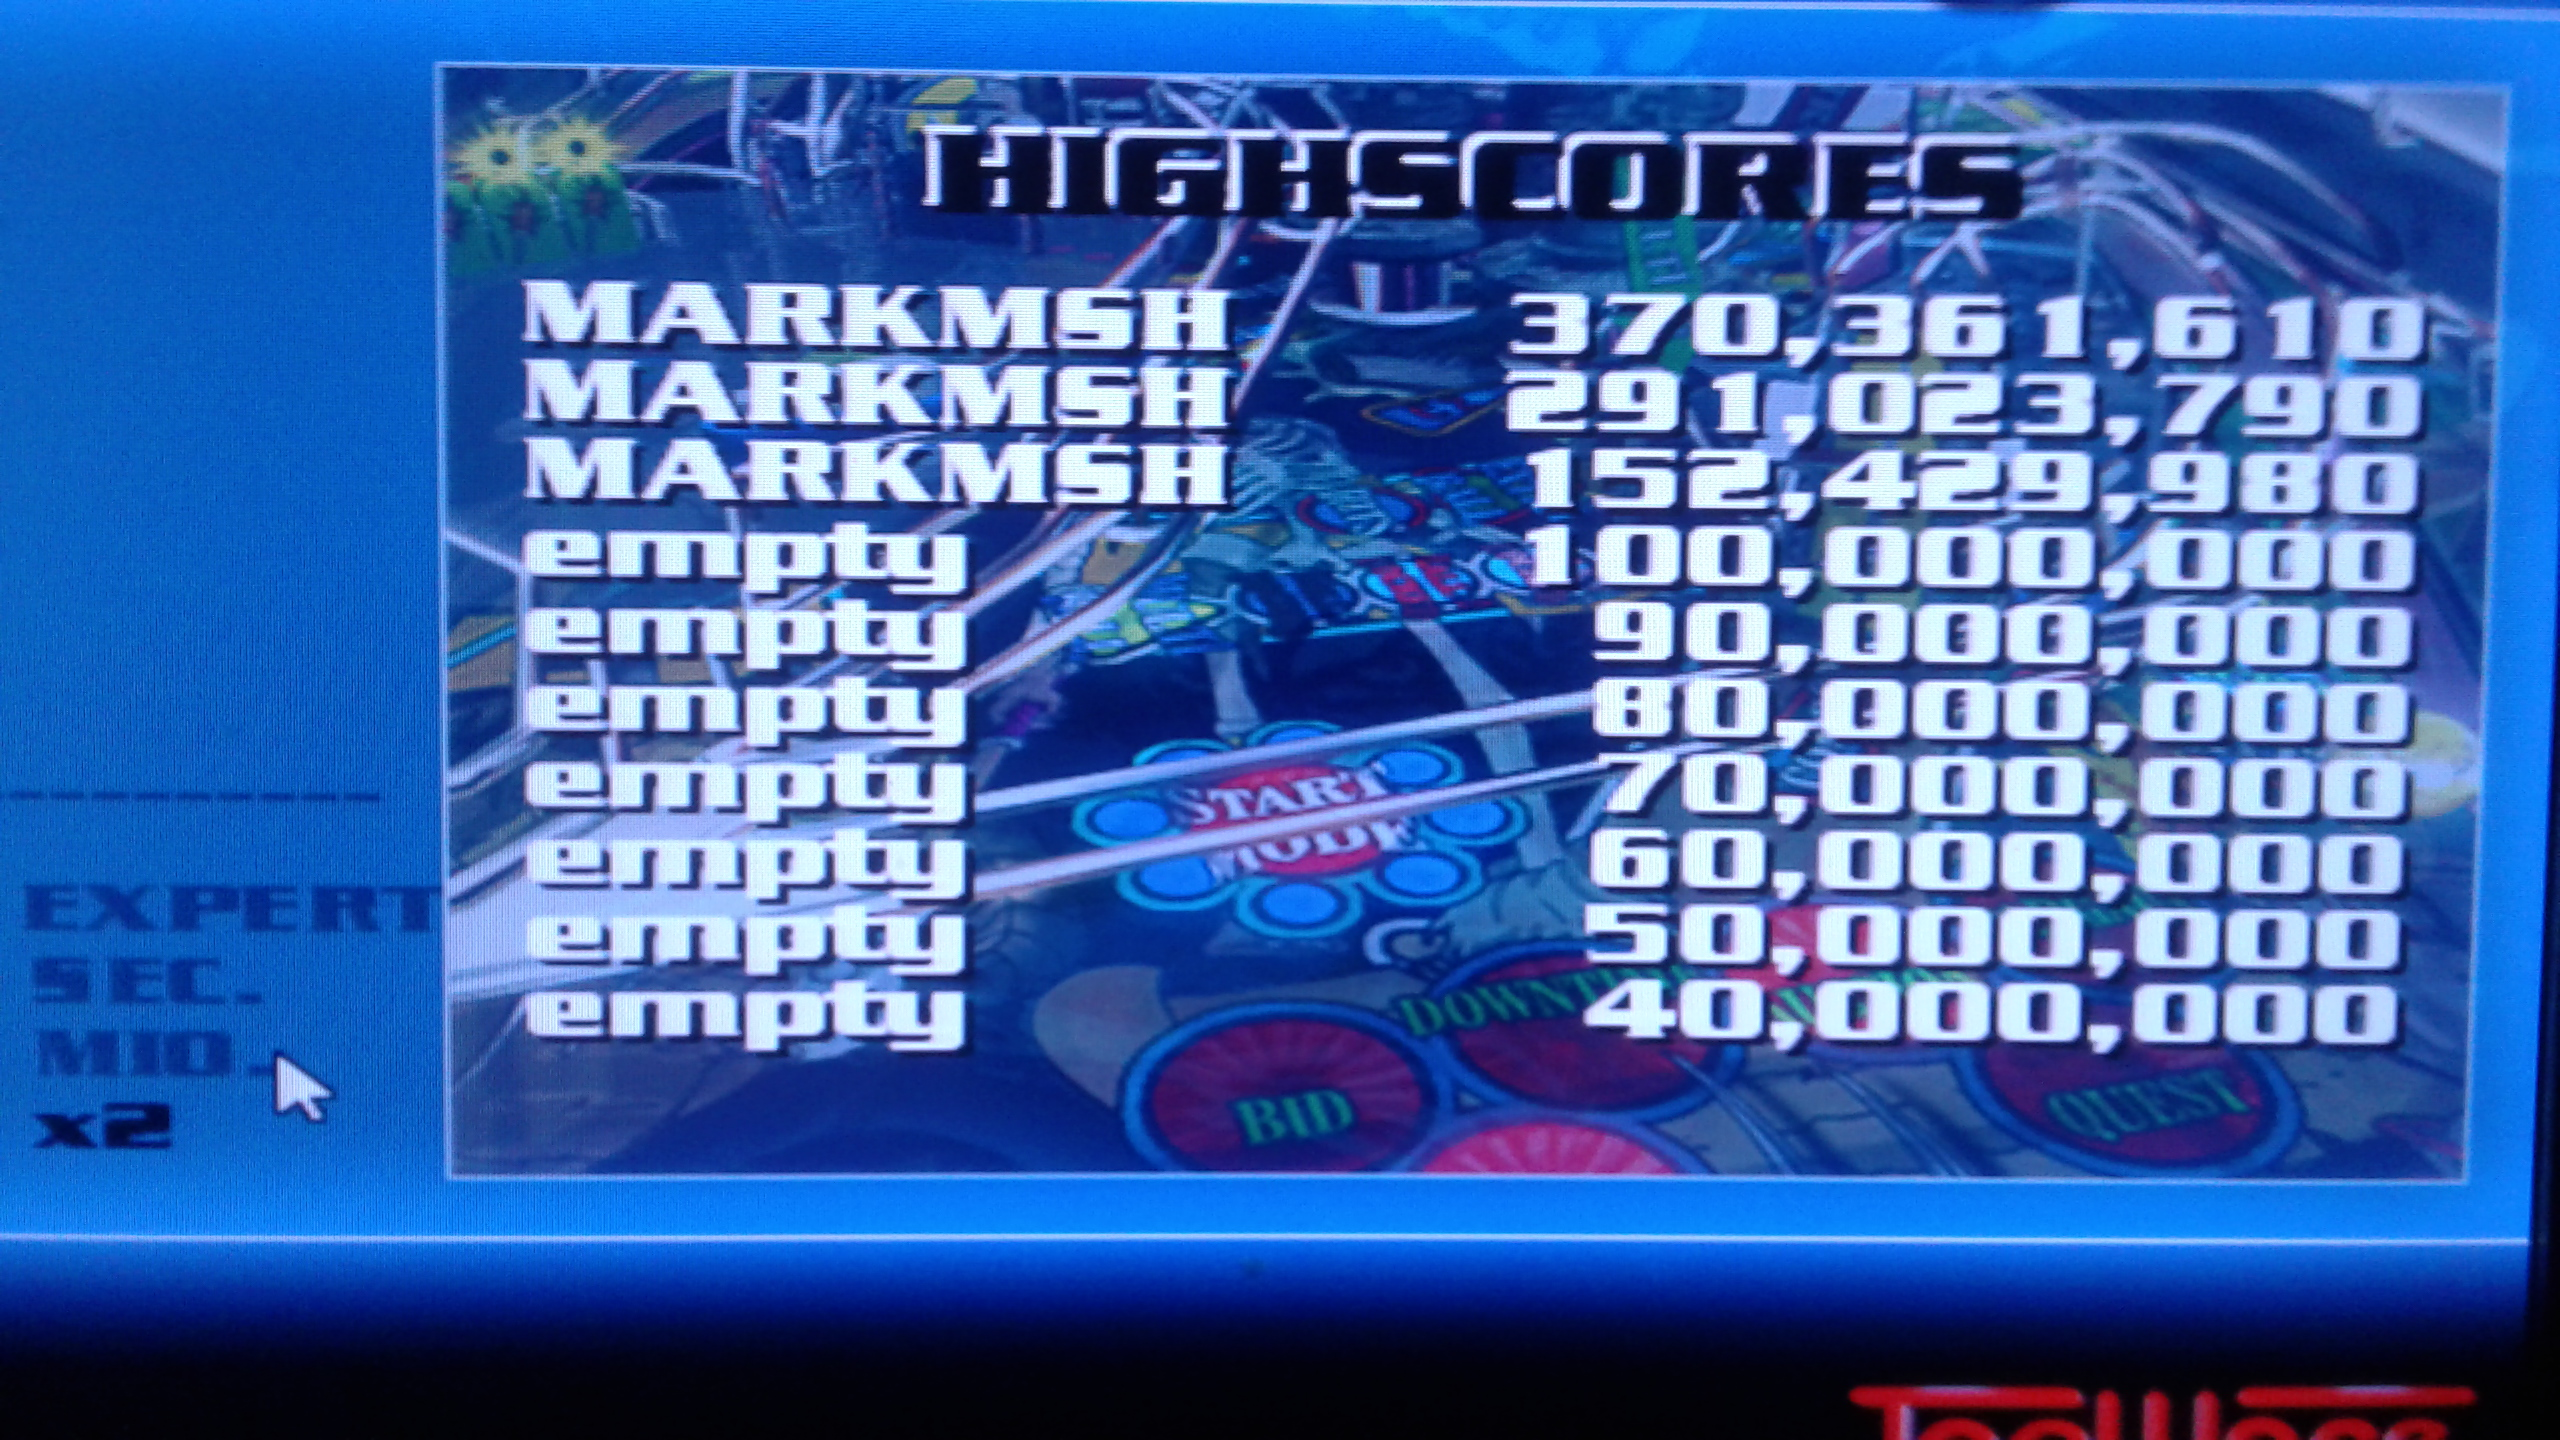 Mark: Dream Pinball 3D: Amber Moon [Hard] (PC Emulated / DOSBox) 370,361,610 points on 2019-05-18 02:38:50